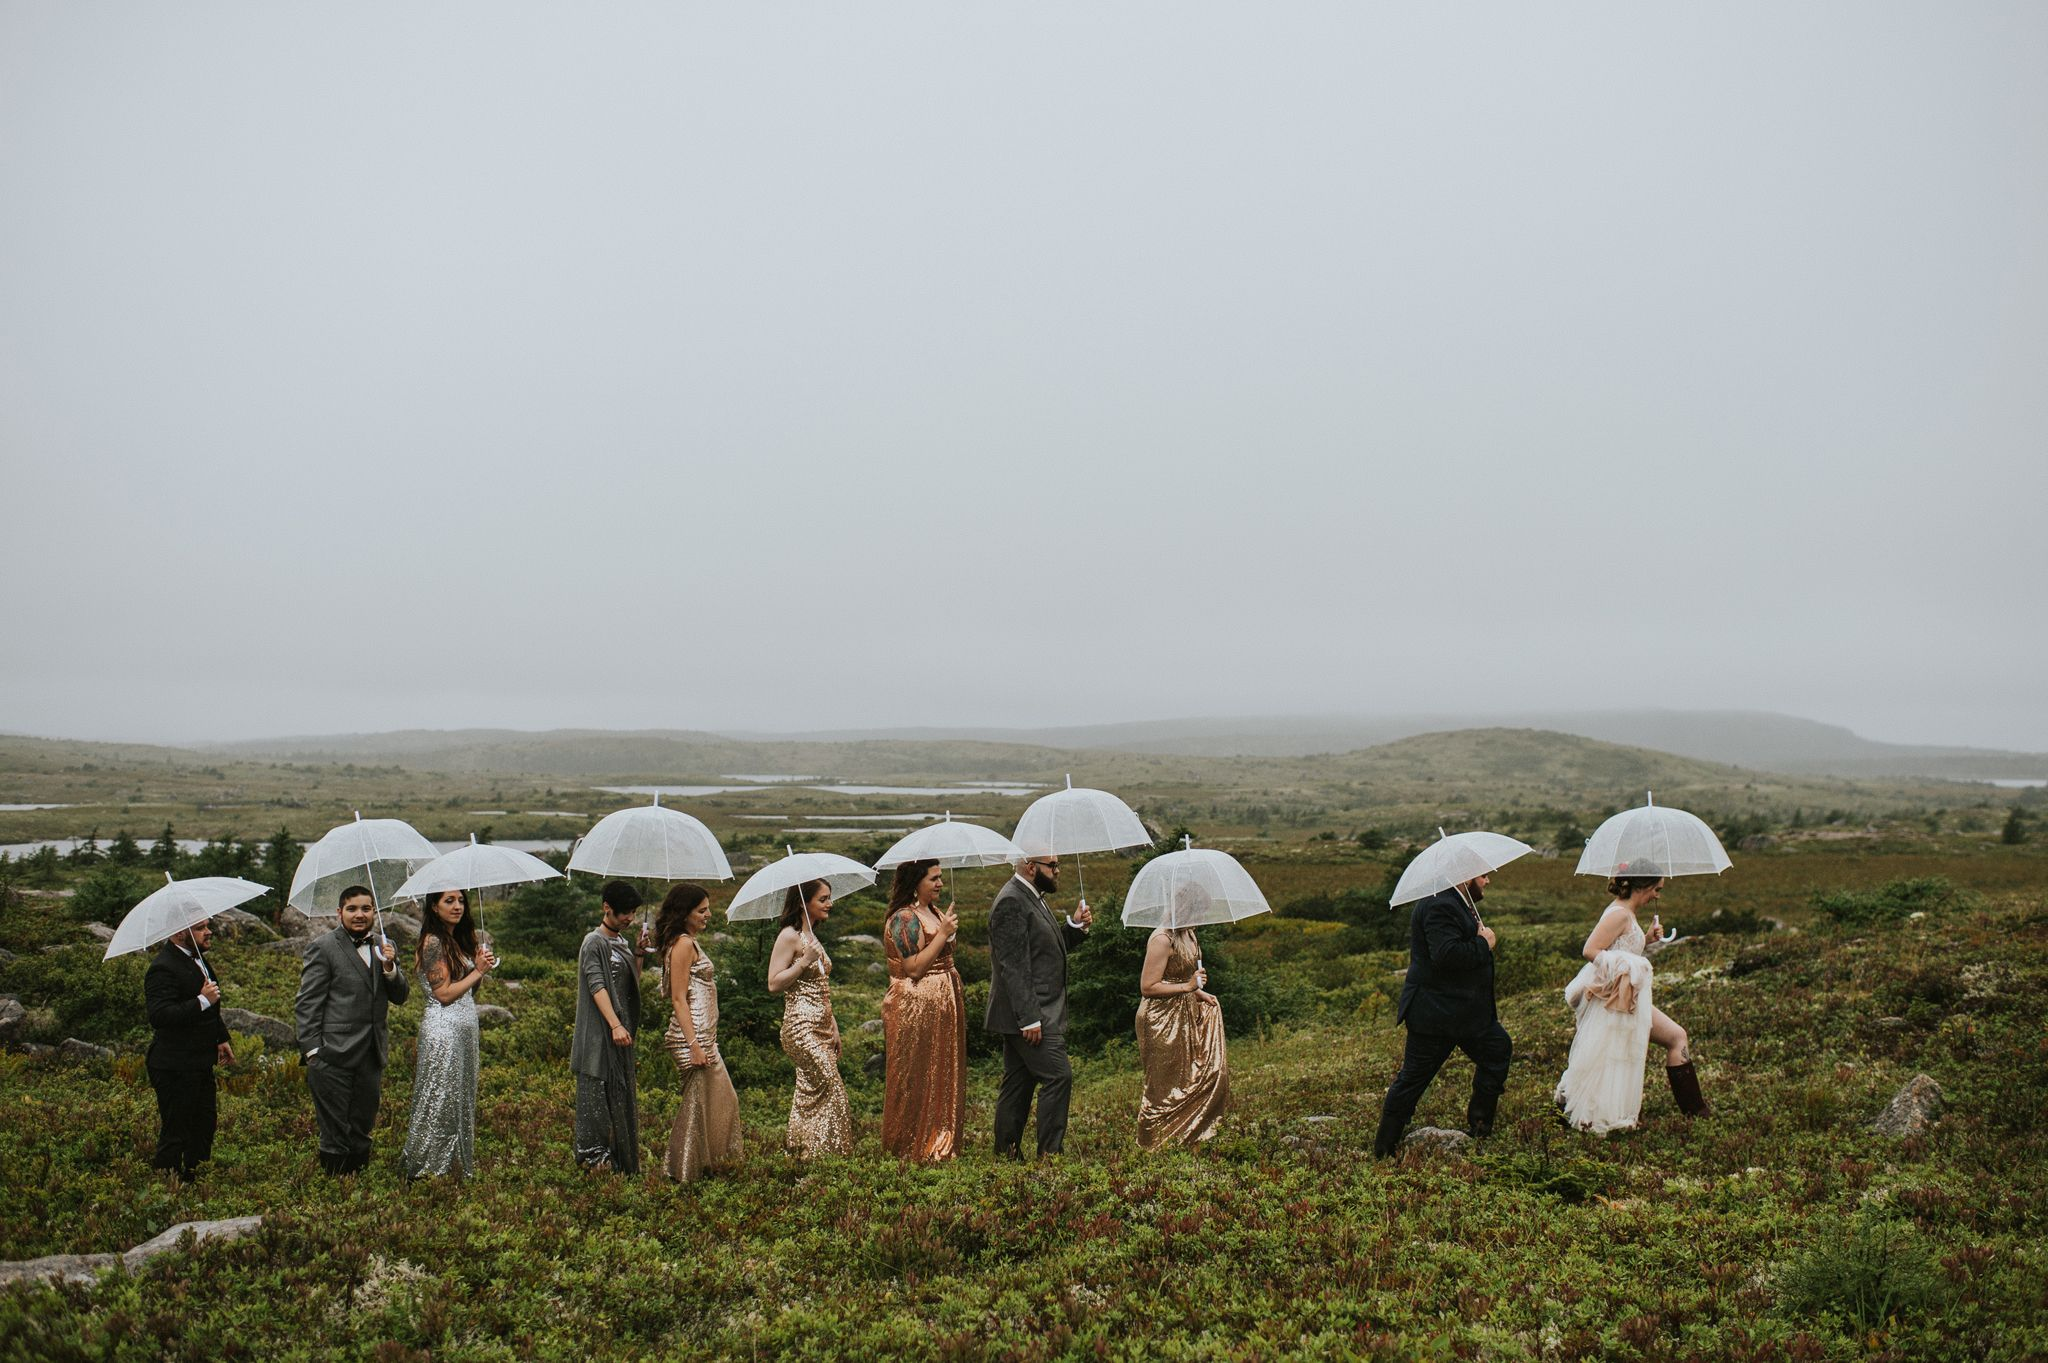 A brightly dressed bridal party walk across a barren marsh in a straight line holding umbrellas.